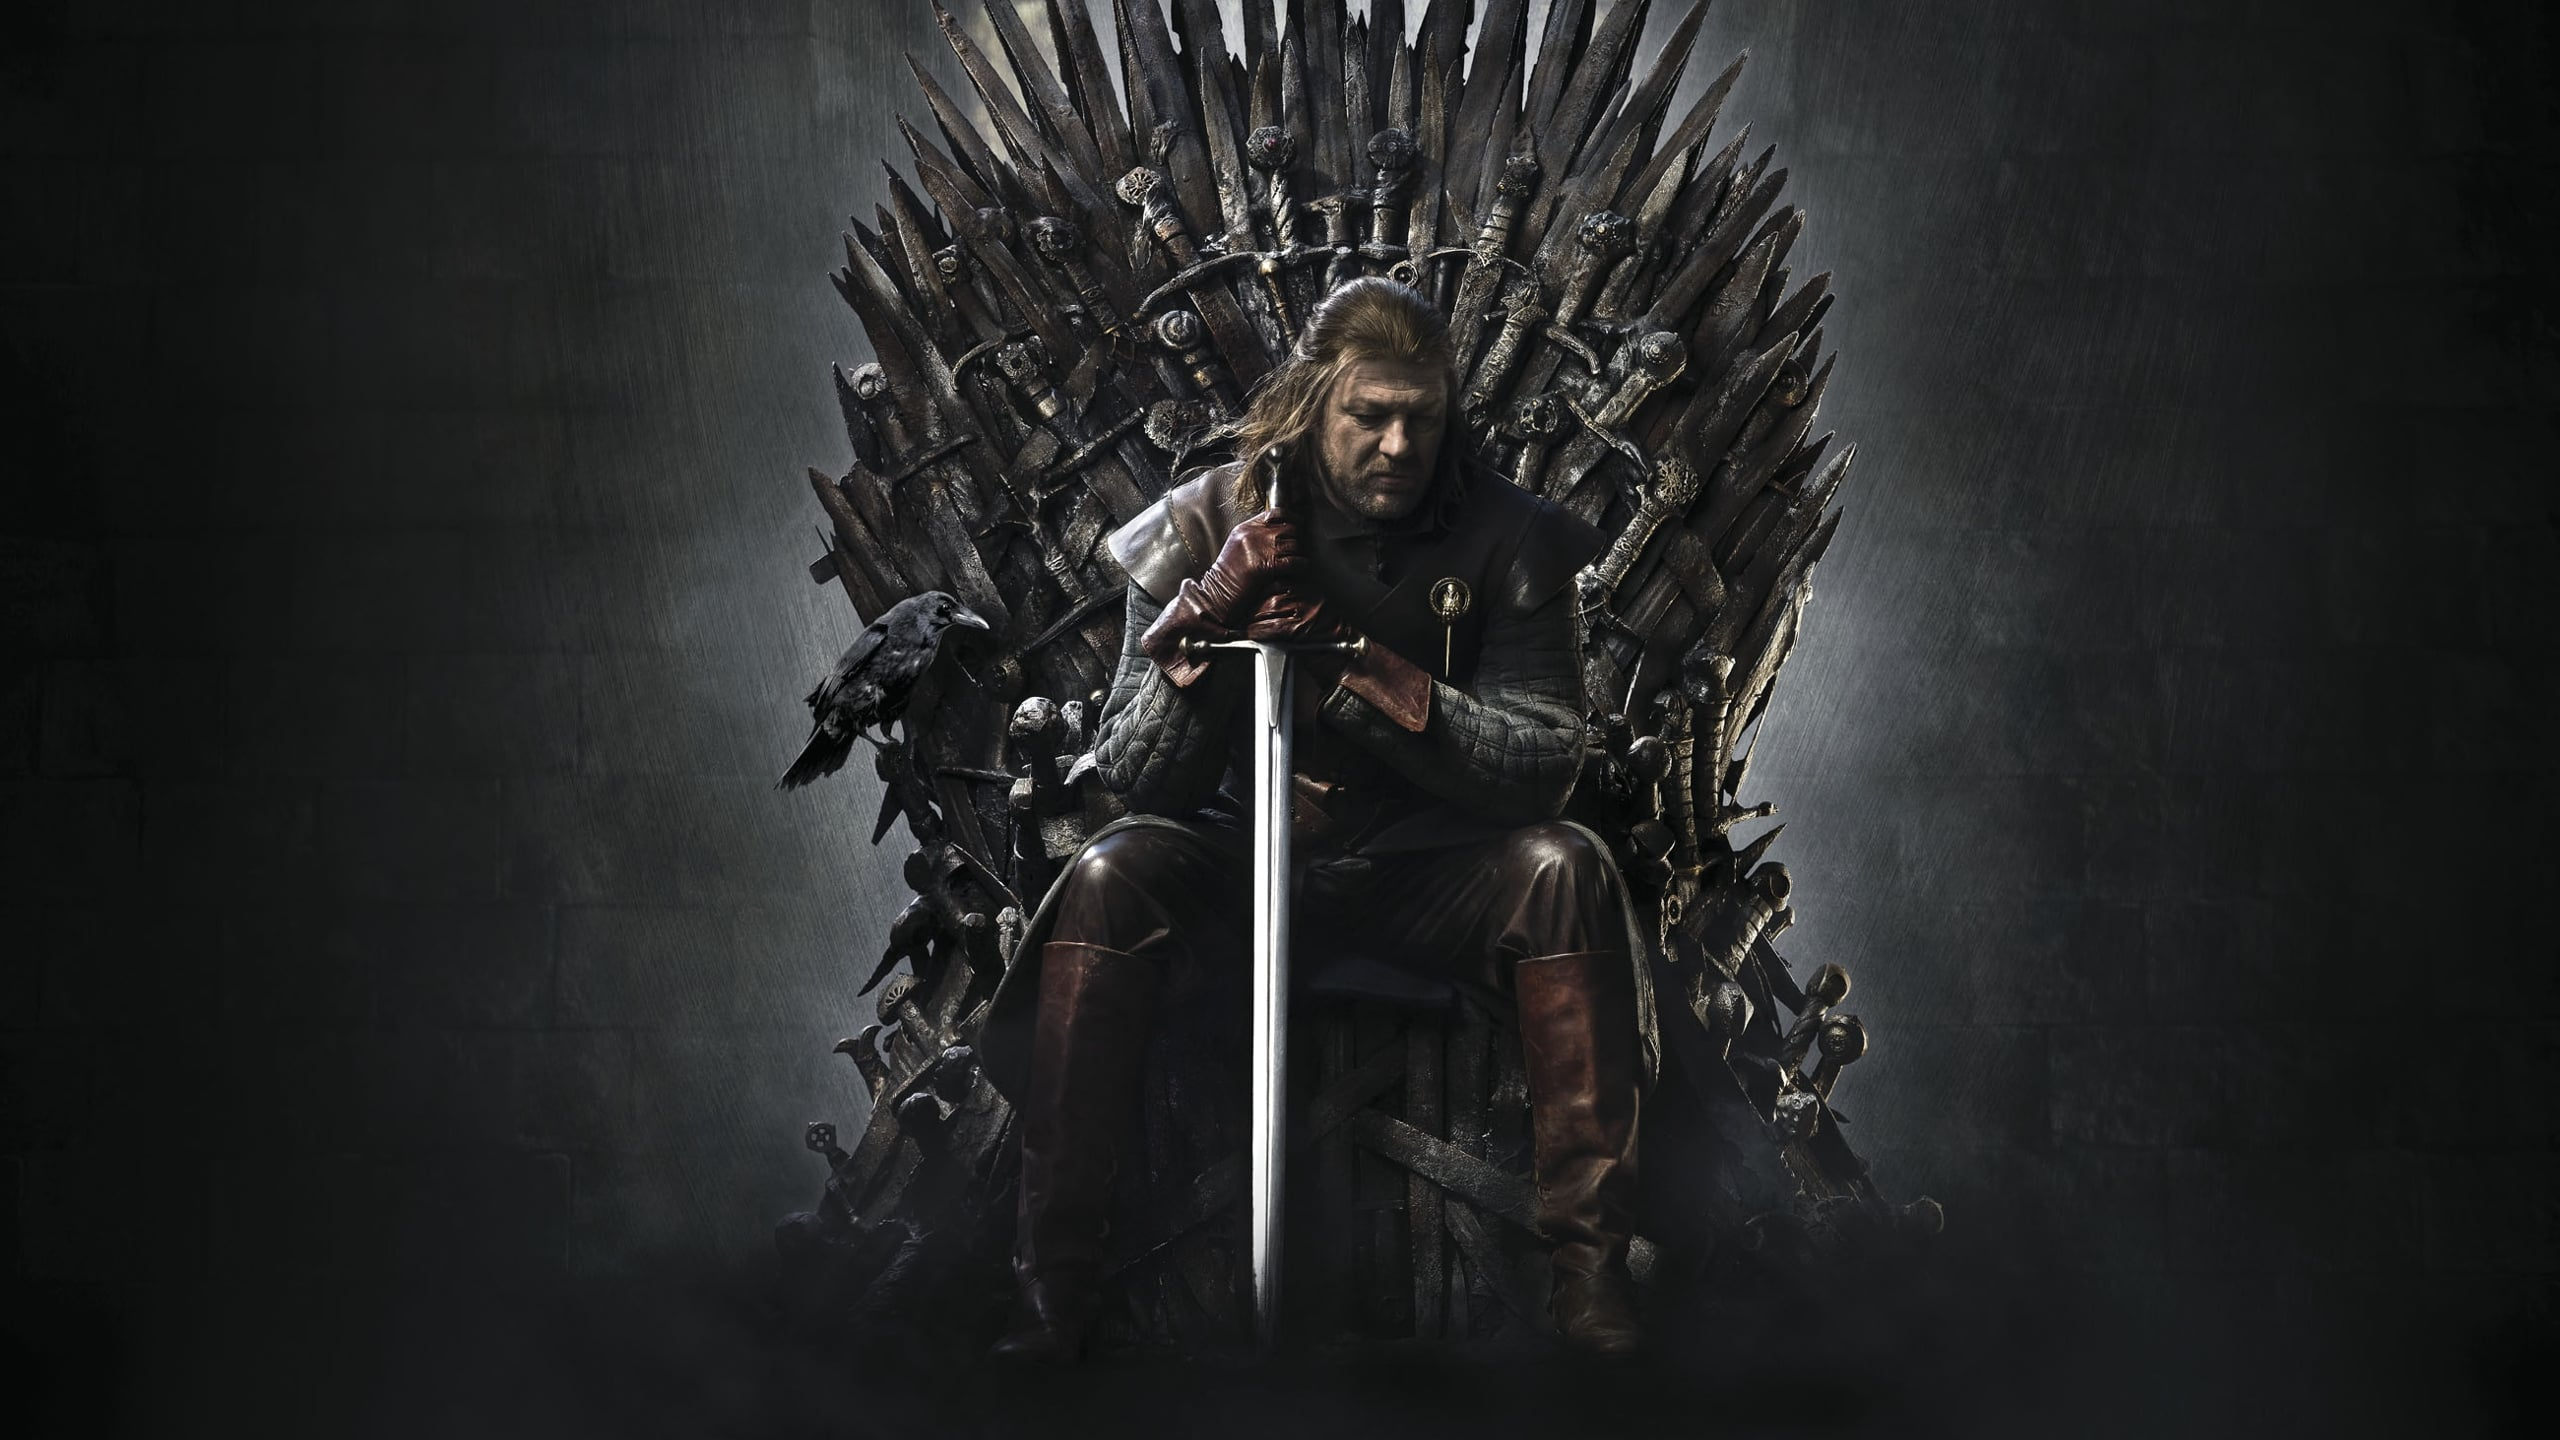 14 Captivating TV Shows Like Game of Thrones That'll Hook You Instantly